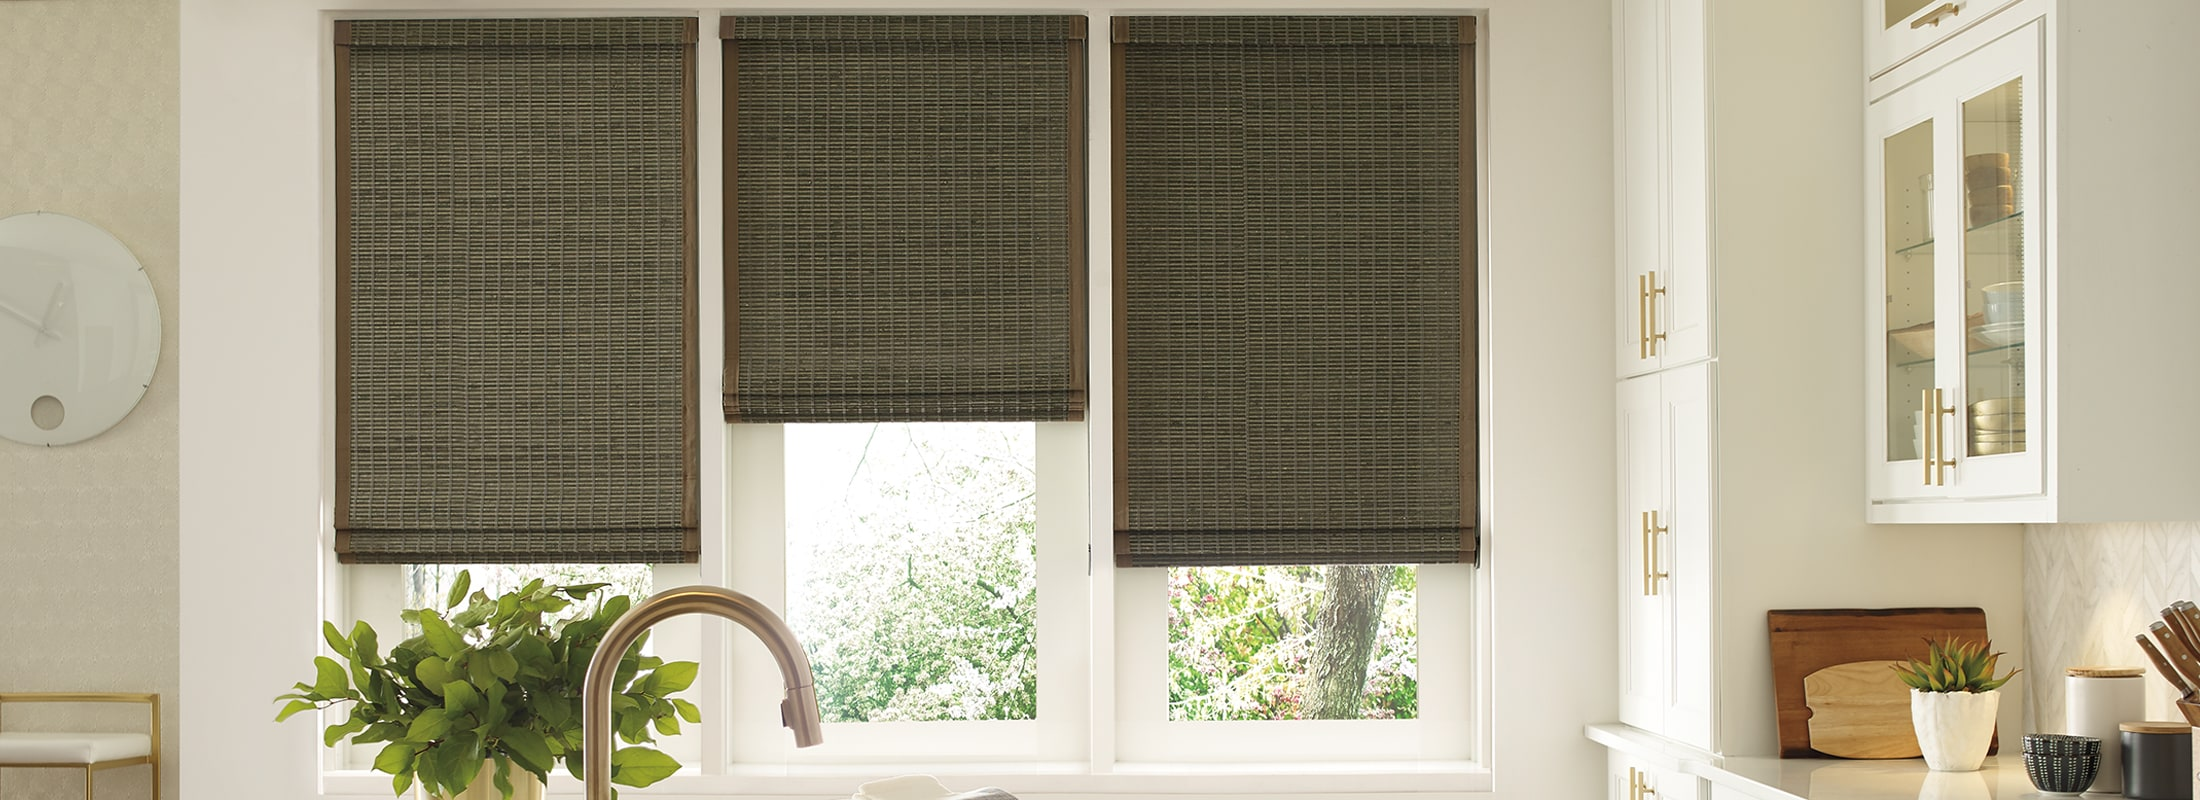 bamboo-blinds-provenance-in-mindanao-graphite